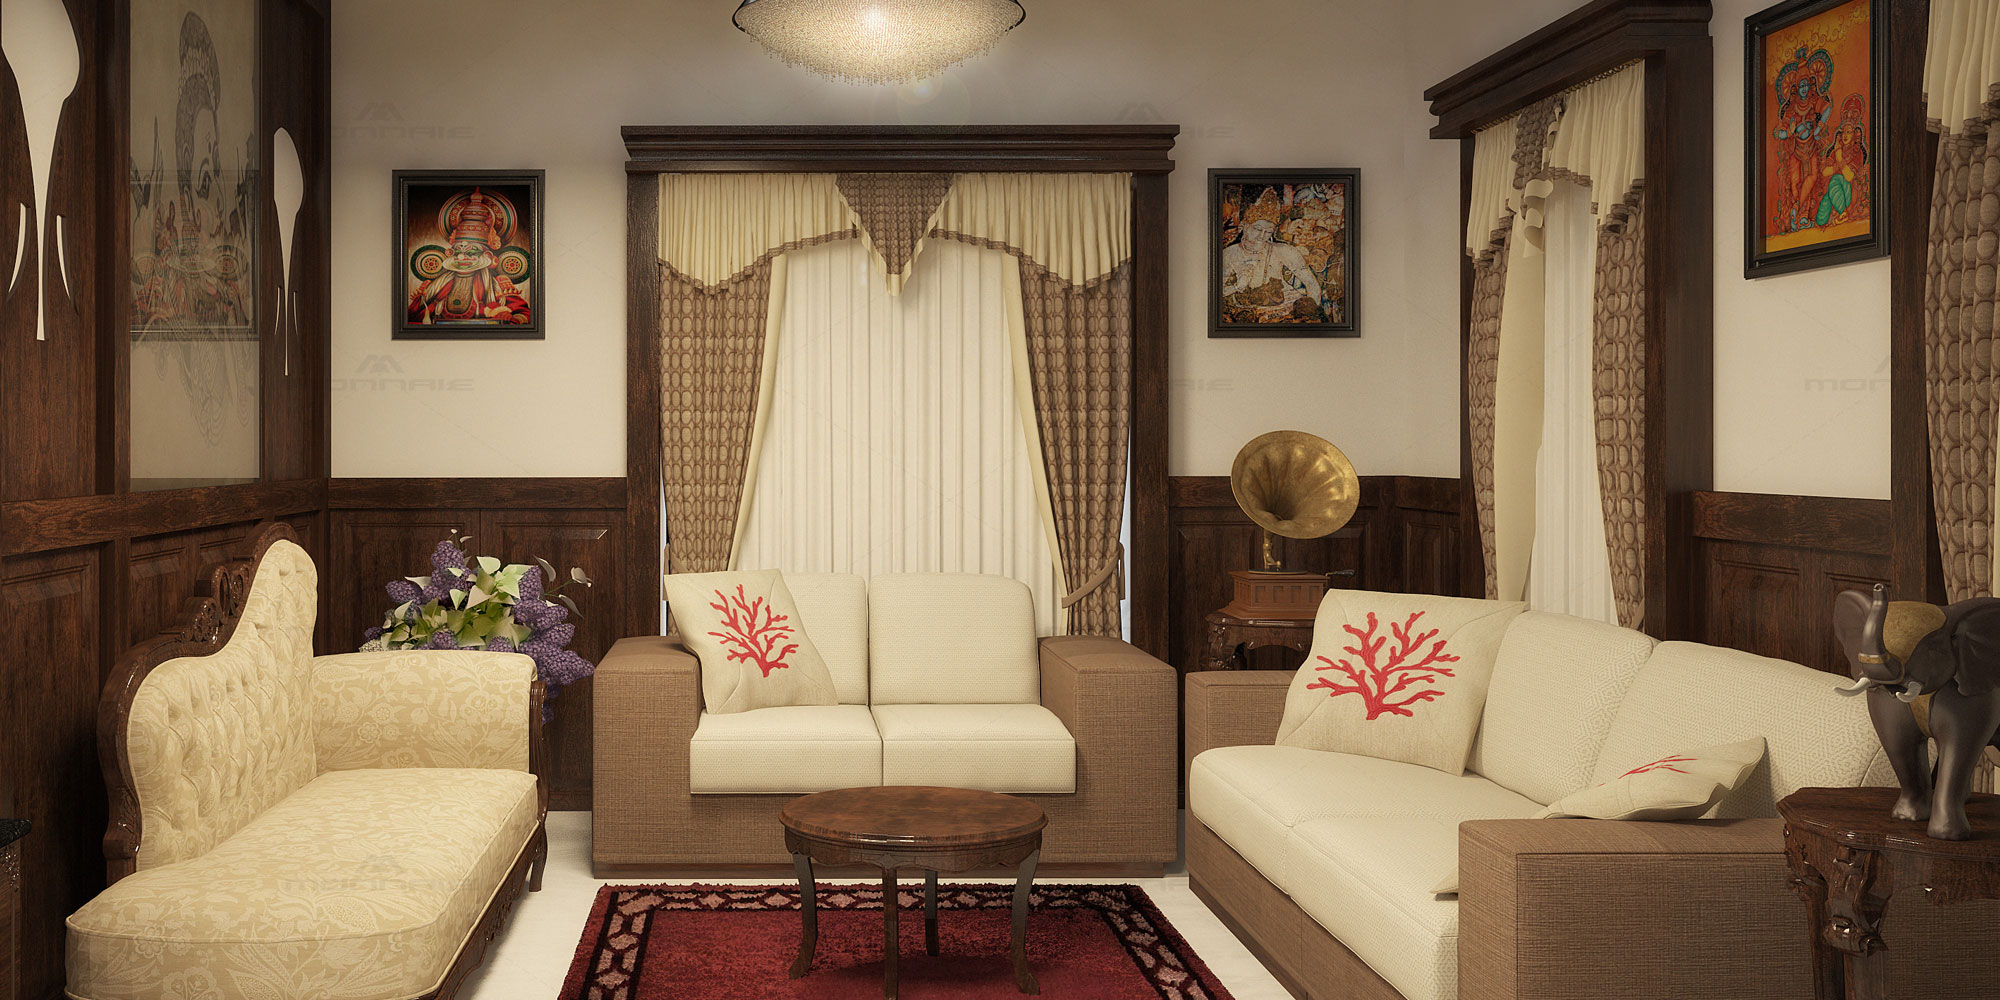 kerala traditional living room design ideas - Monnaie Architects & Interiors